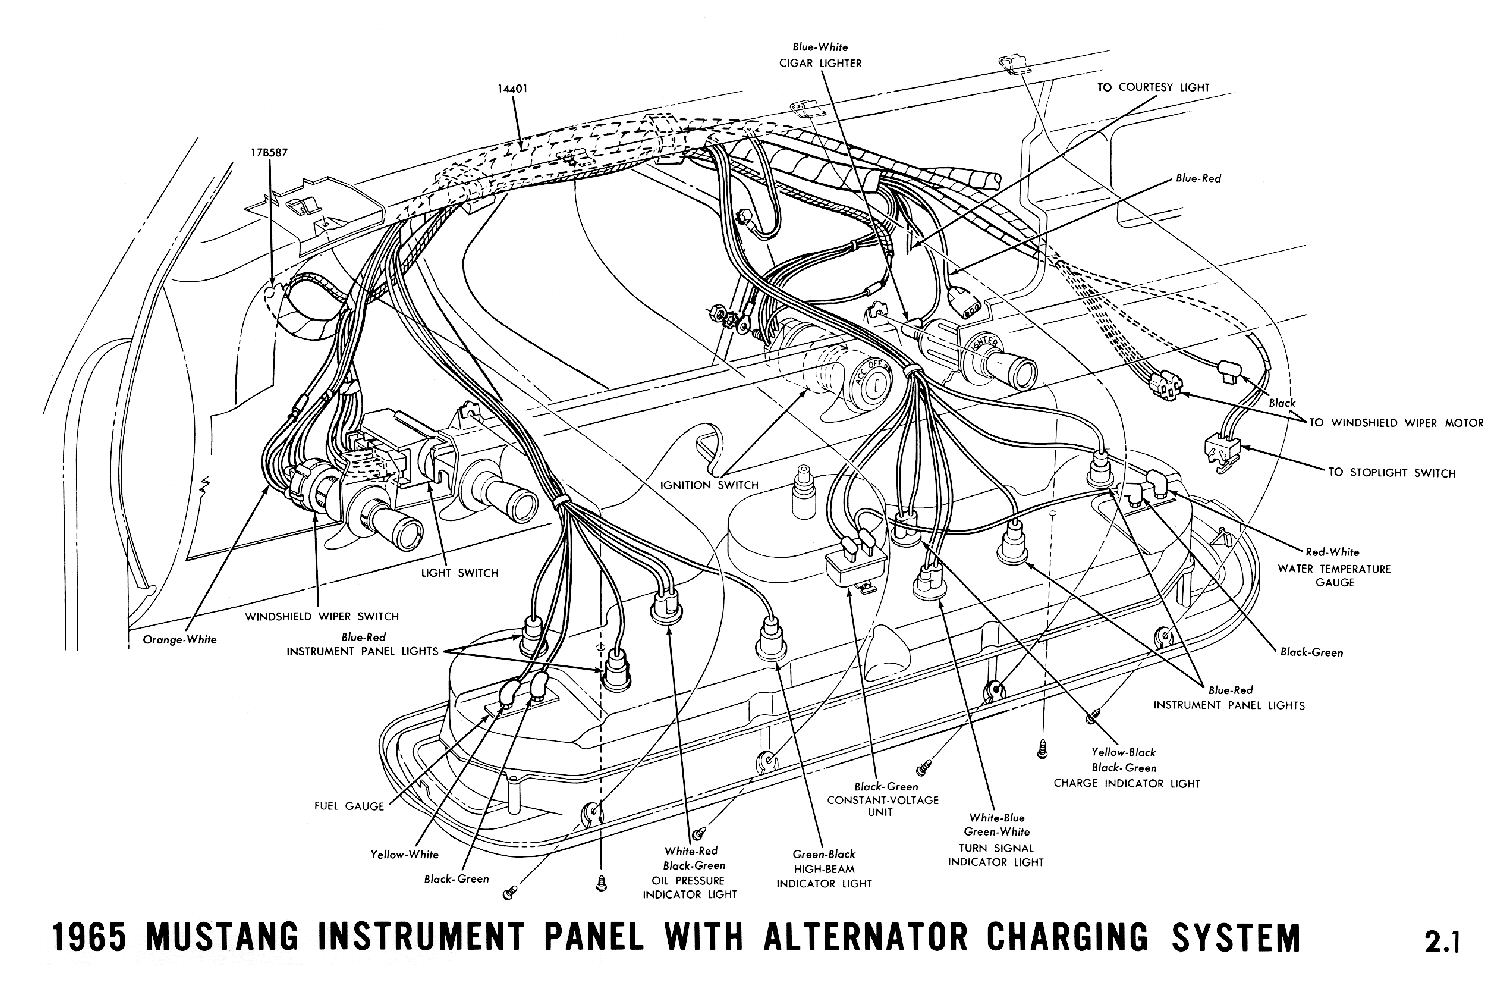 1965a 1965 mustang wiring diagrams average joe restoration 1966 mustang fuse box diagram at bayanpartner.co